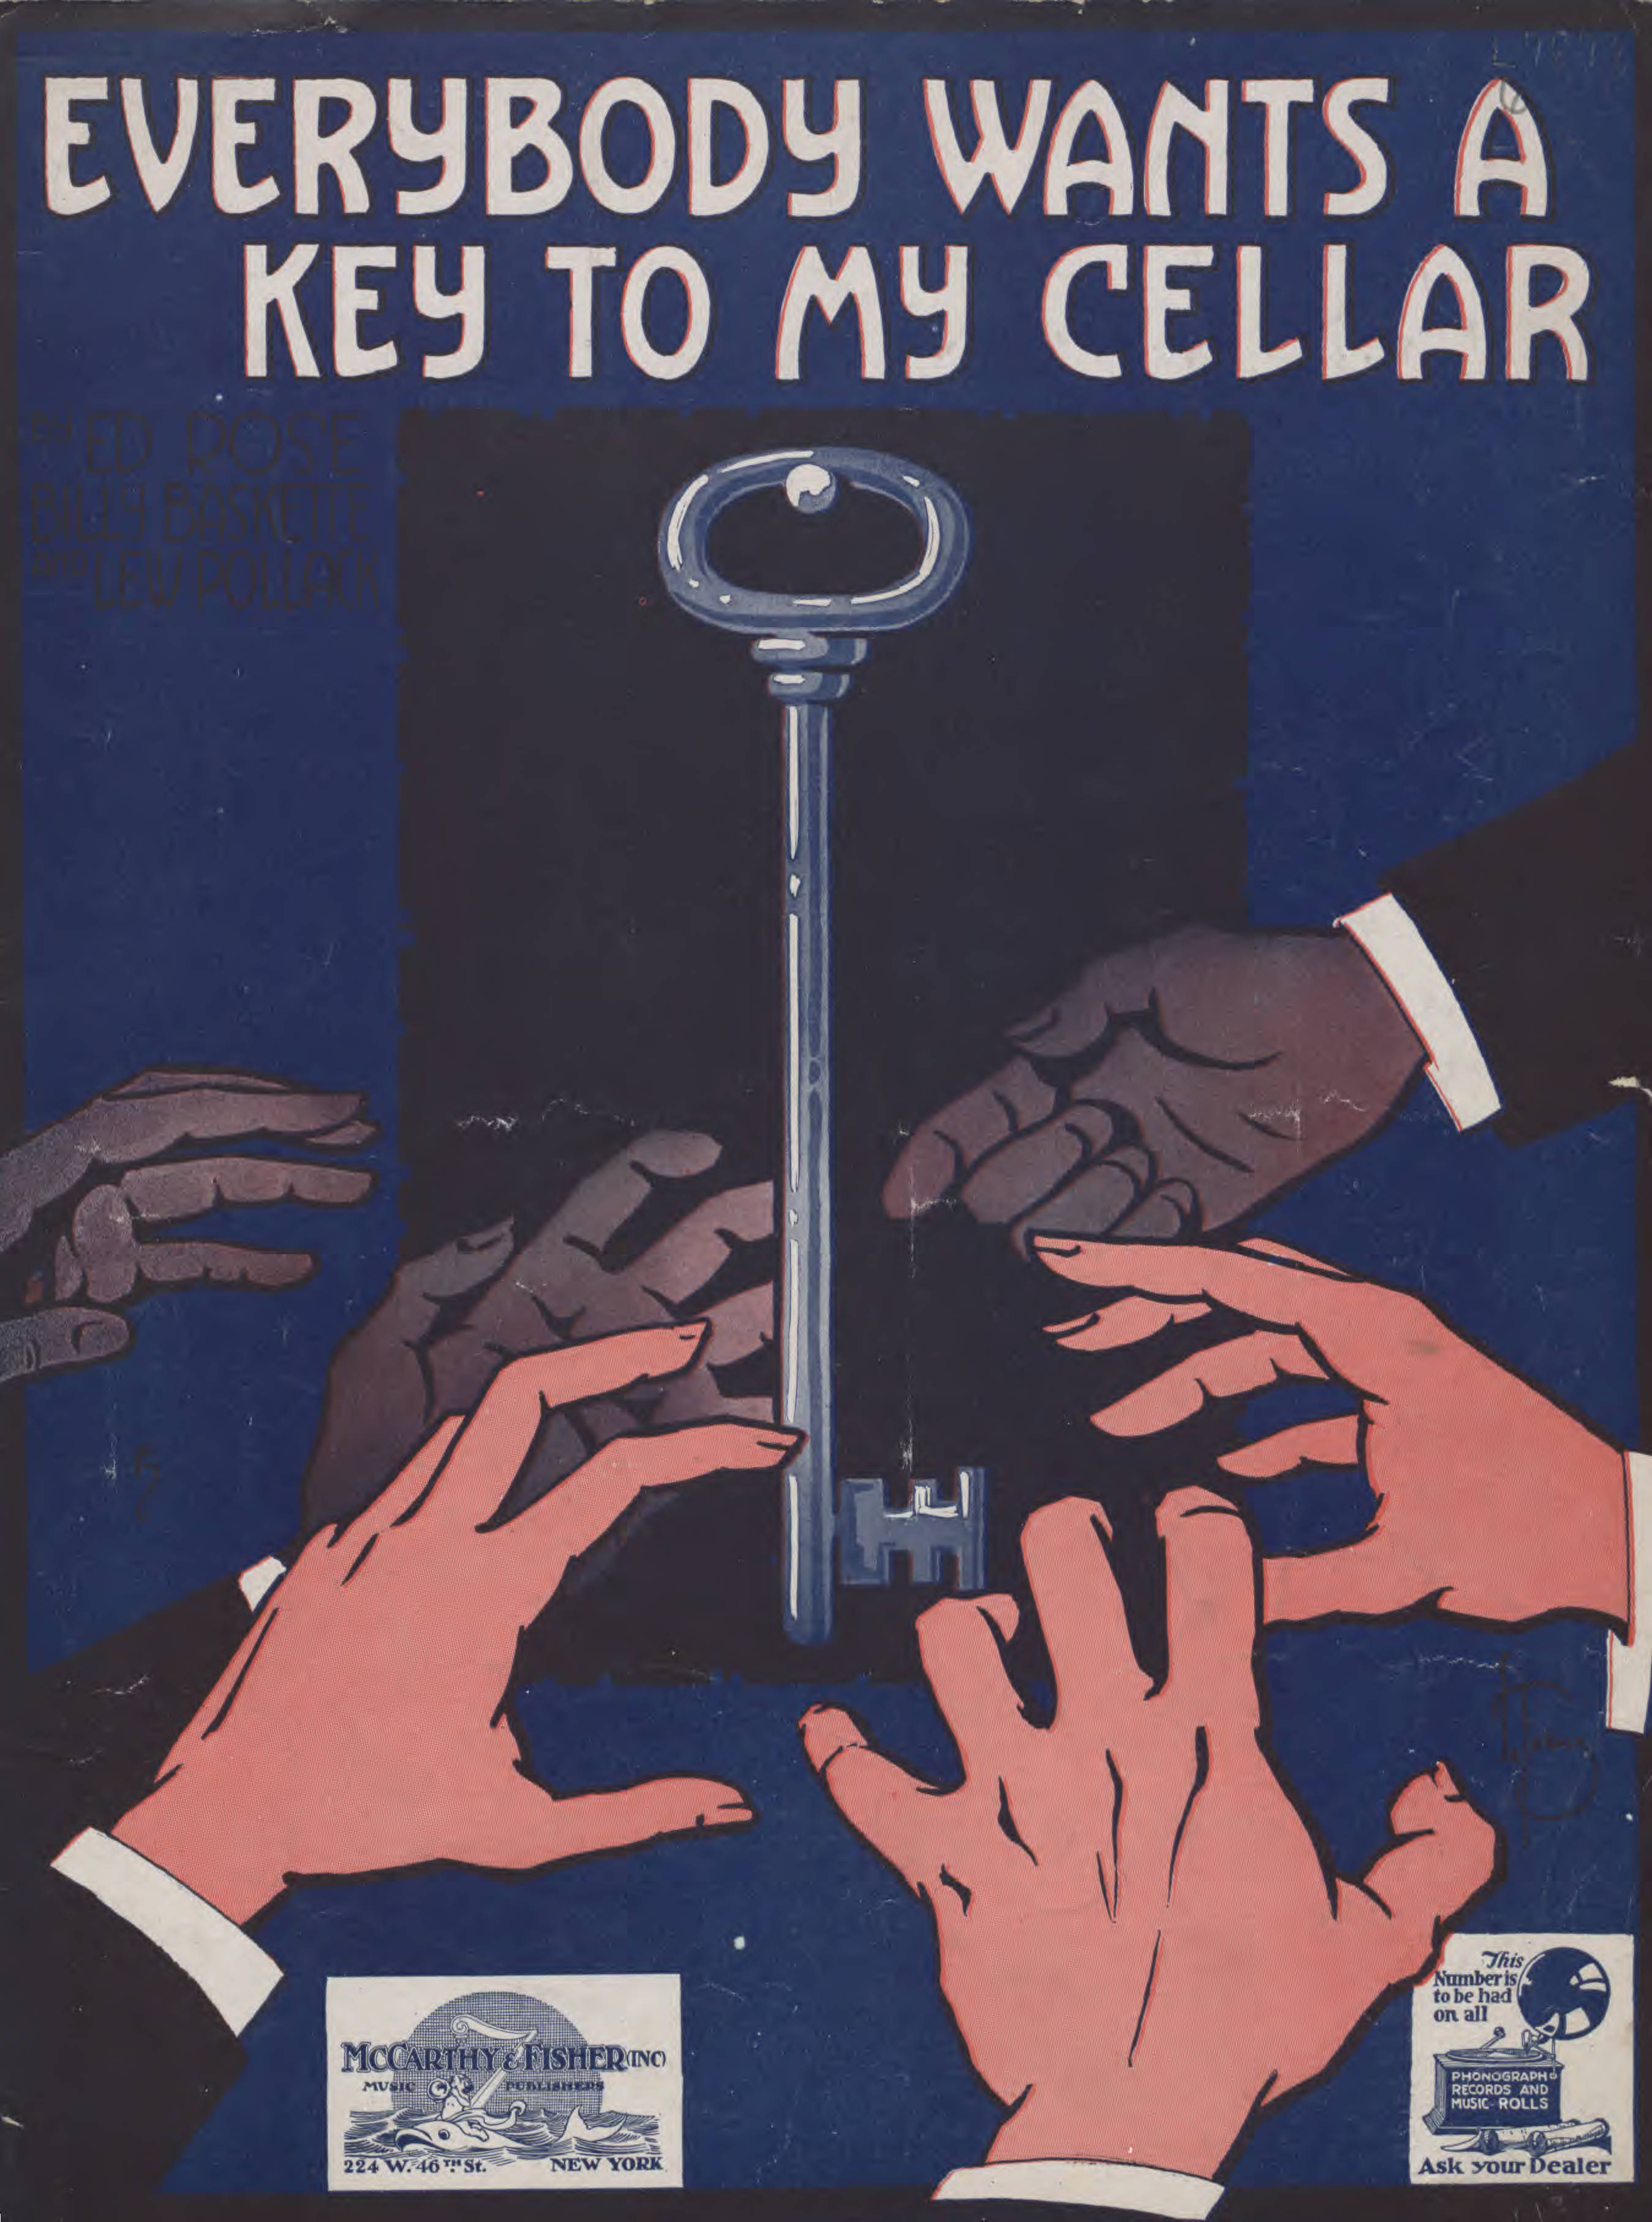 Baylor Univ Libraries_Everybody wants a key to my cellar.jpg